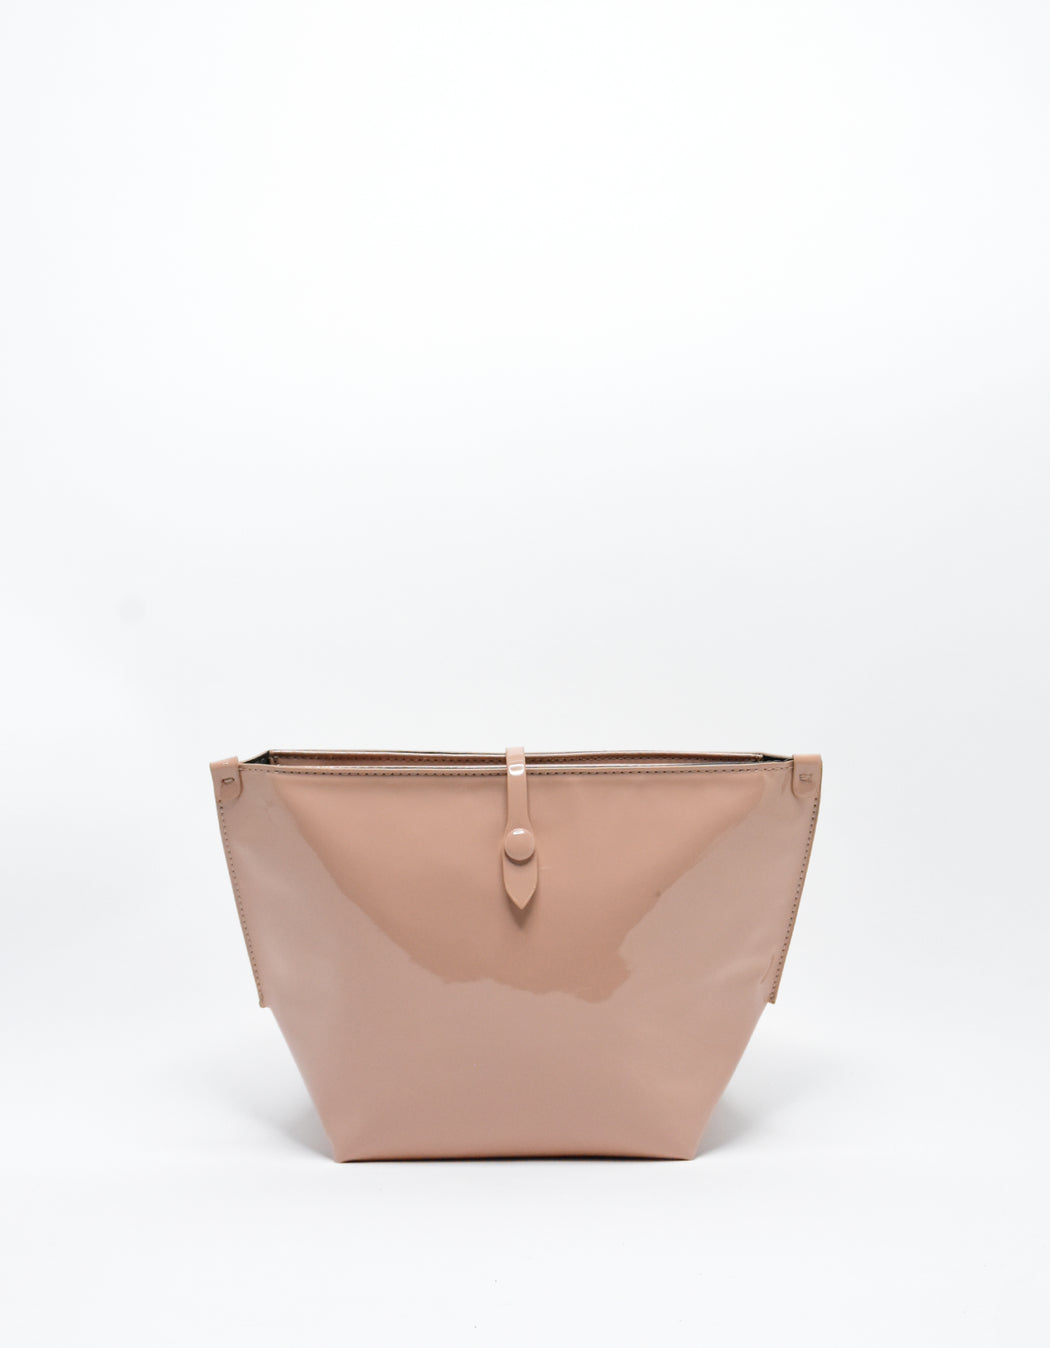 SOBRIQUET PATENT LARGE MAKE UP POUCH NUDE